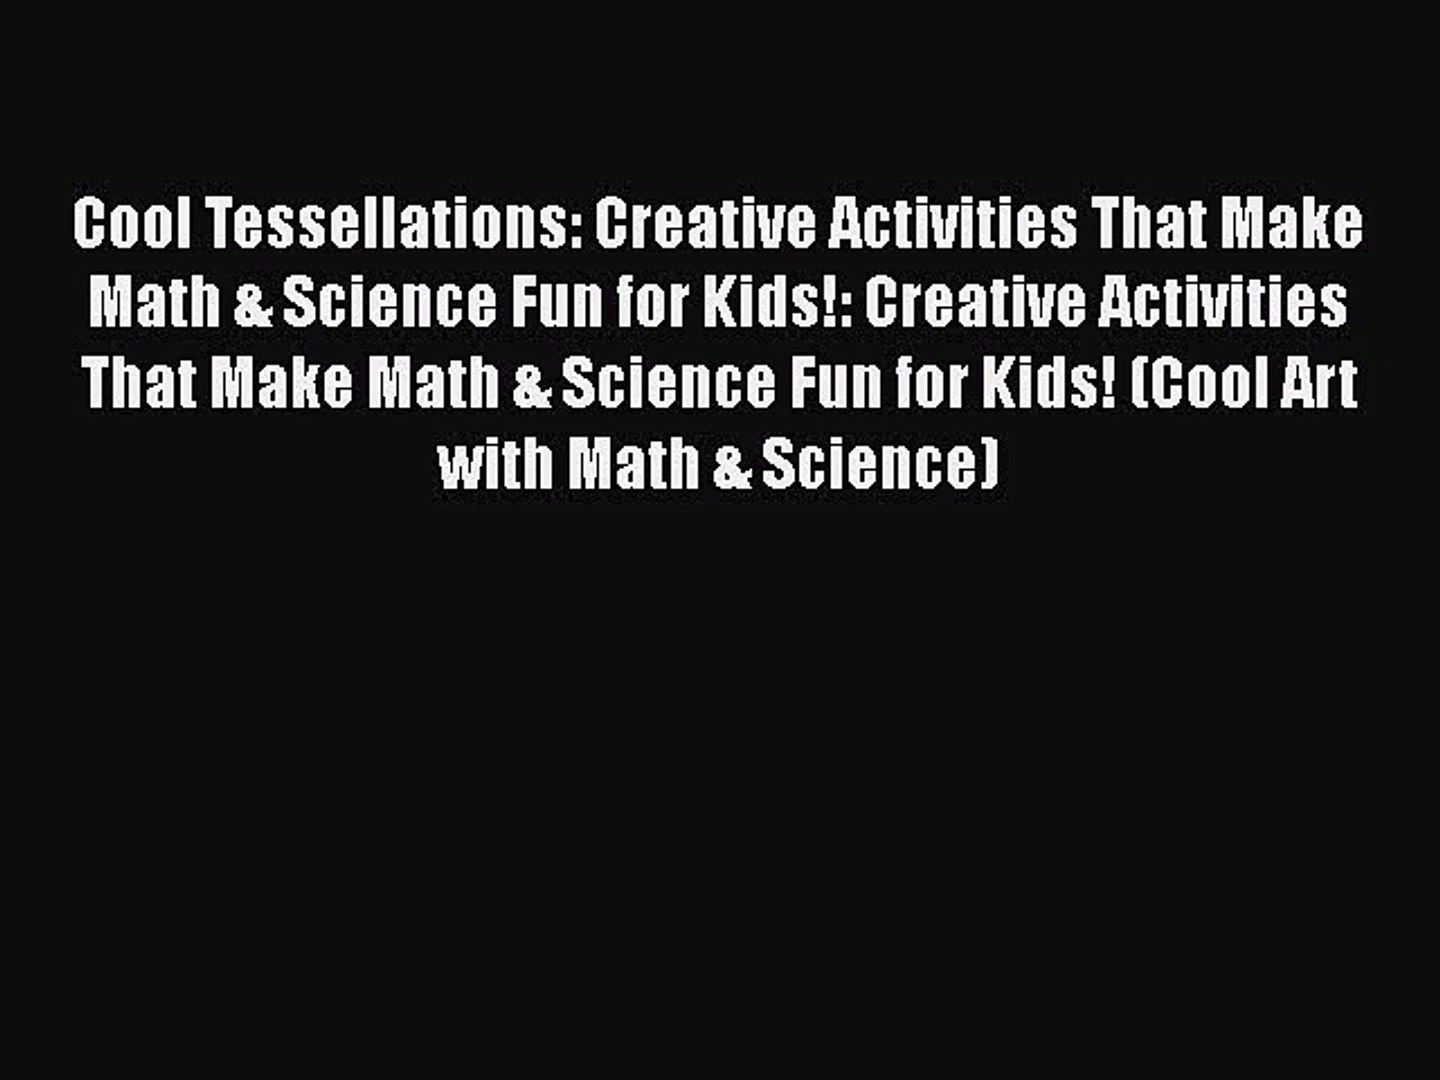 Cool Tessellations: Creative Activities That Make Math & Science Fun for Kids!: Creative Activit